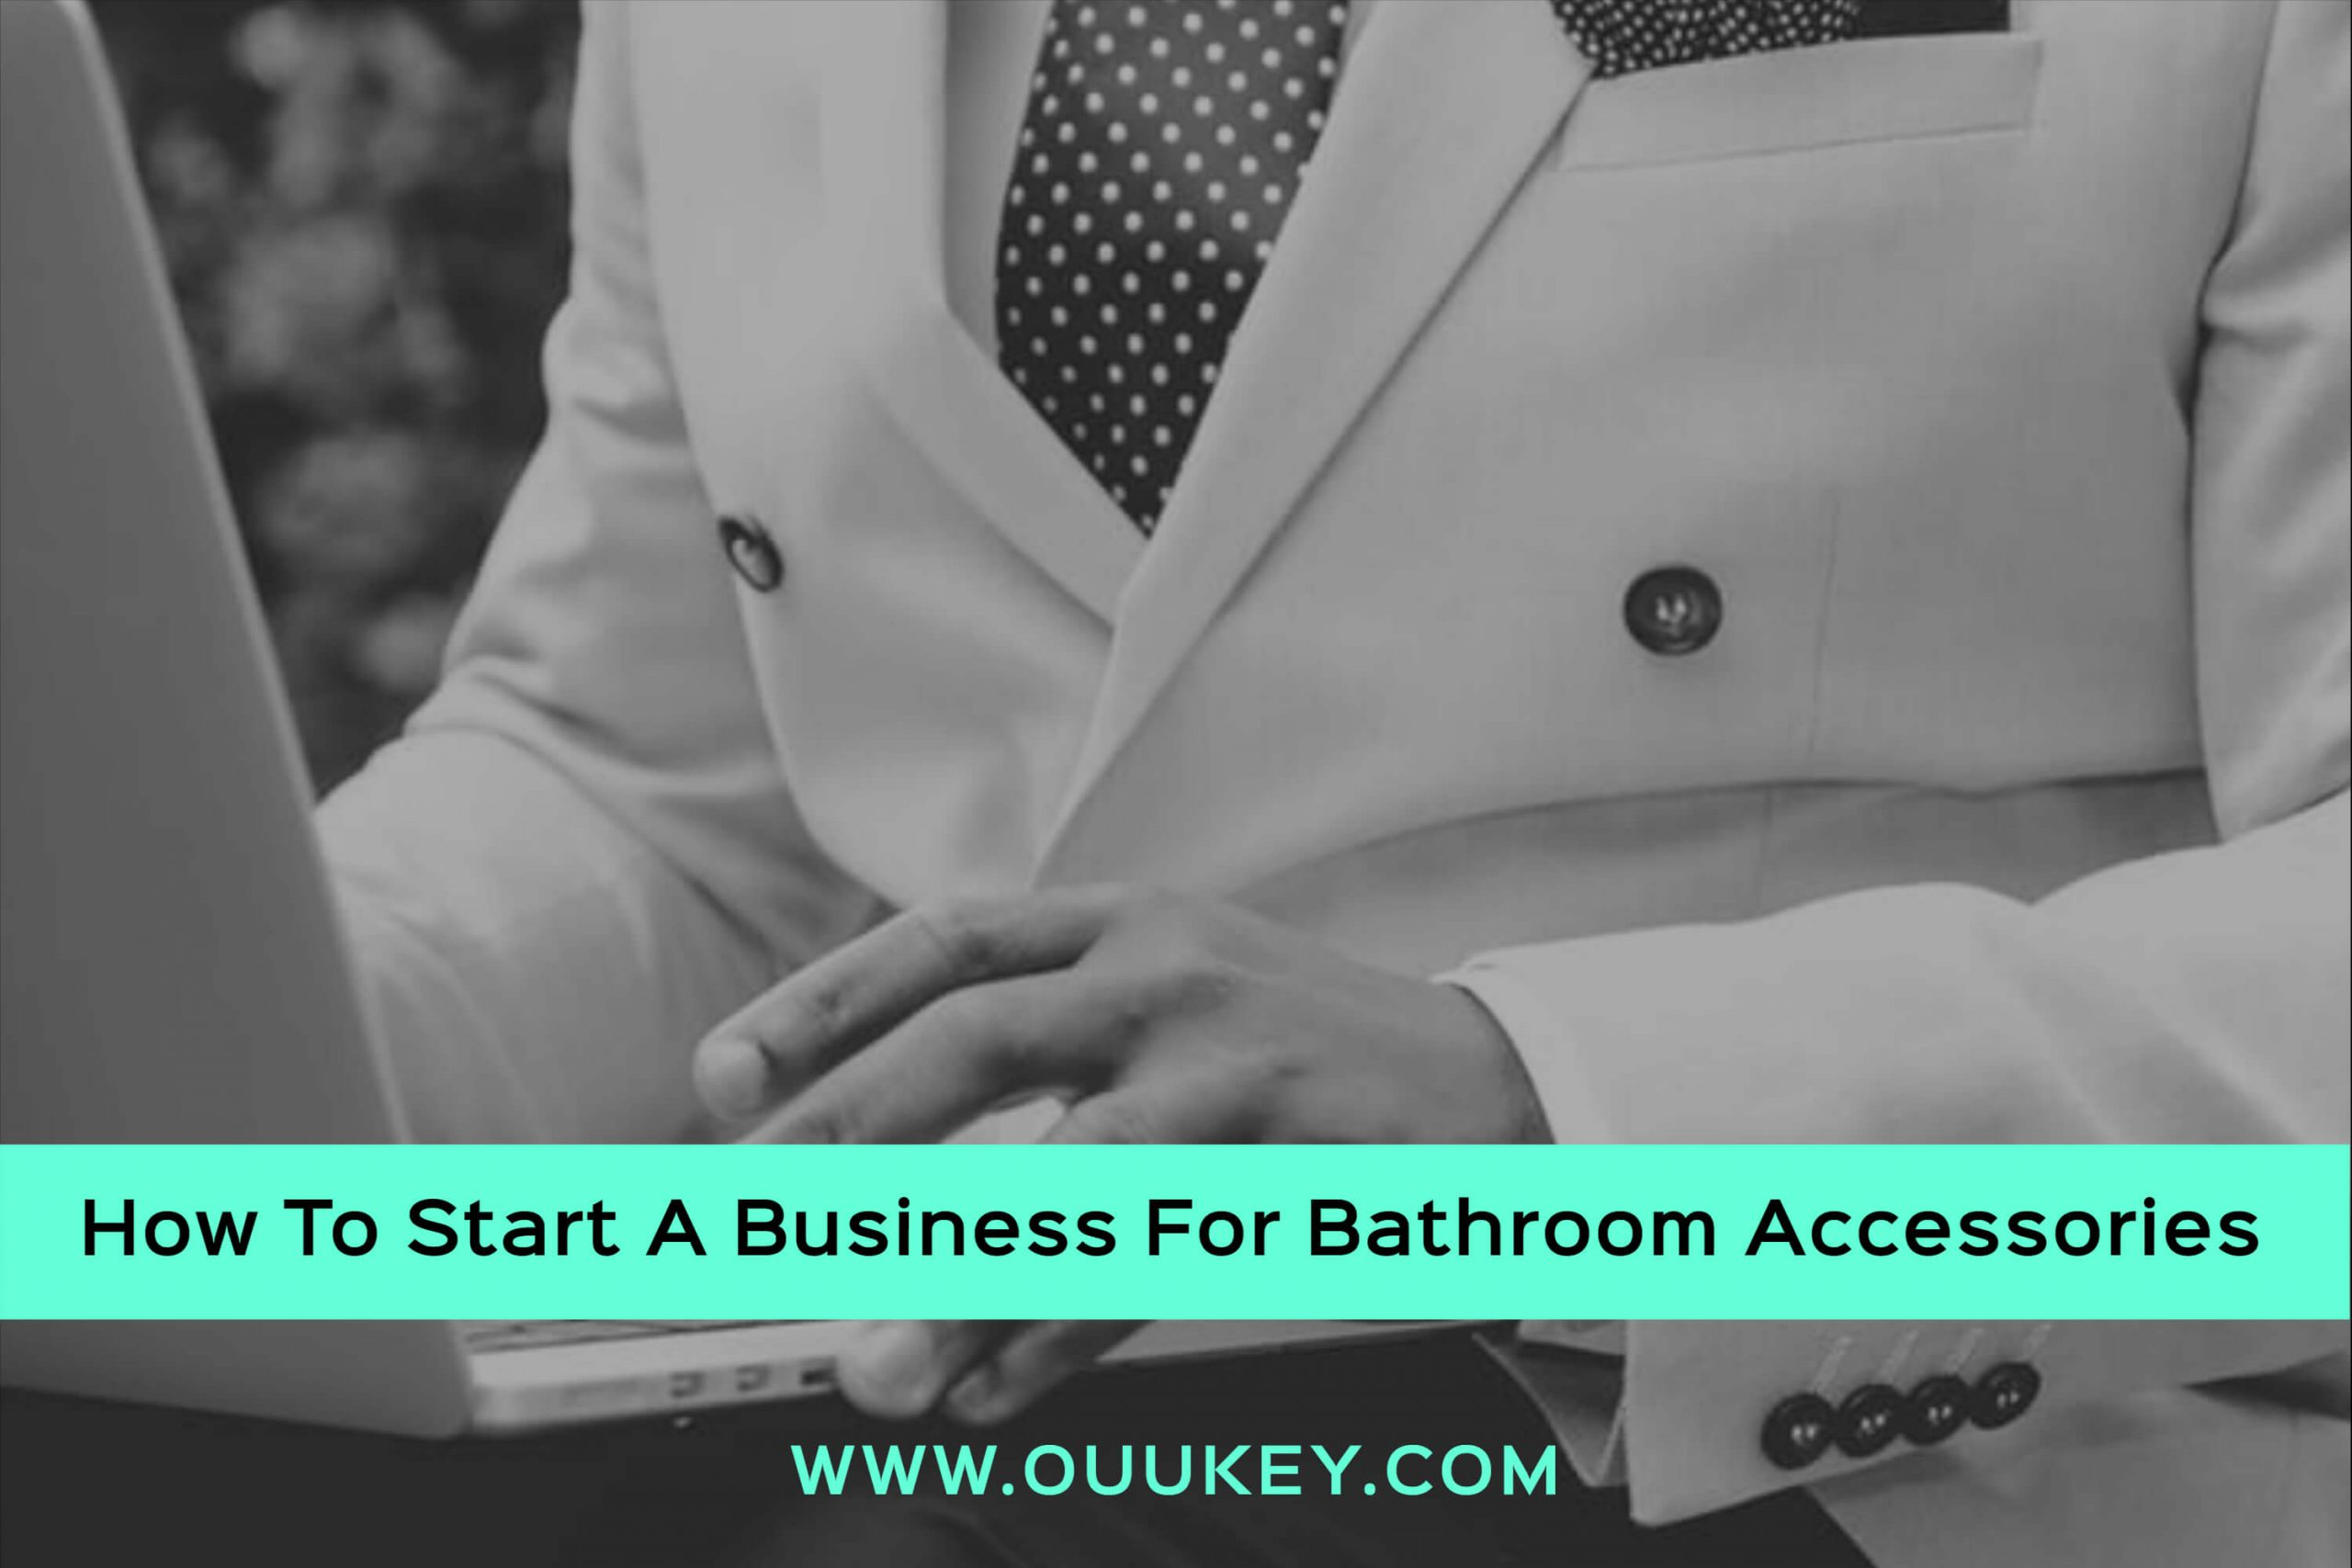 How To Start A Business For Bathroom Accessories - OuuKey